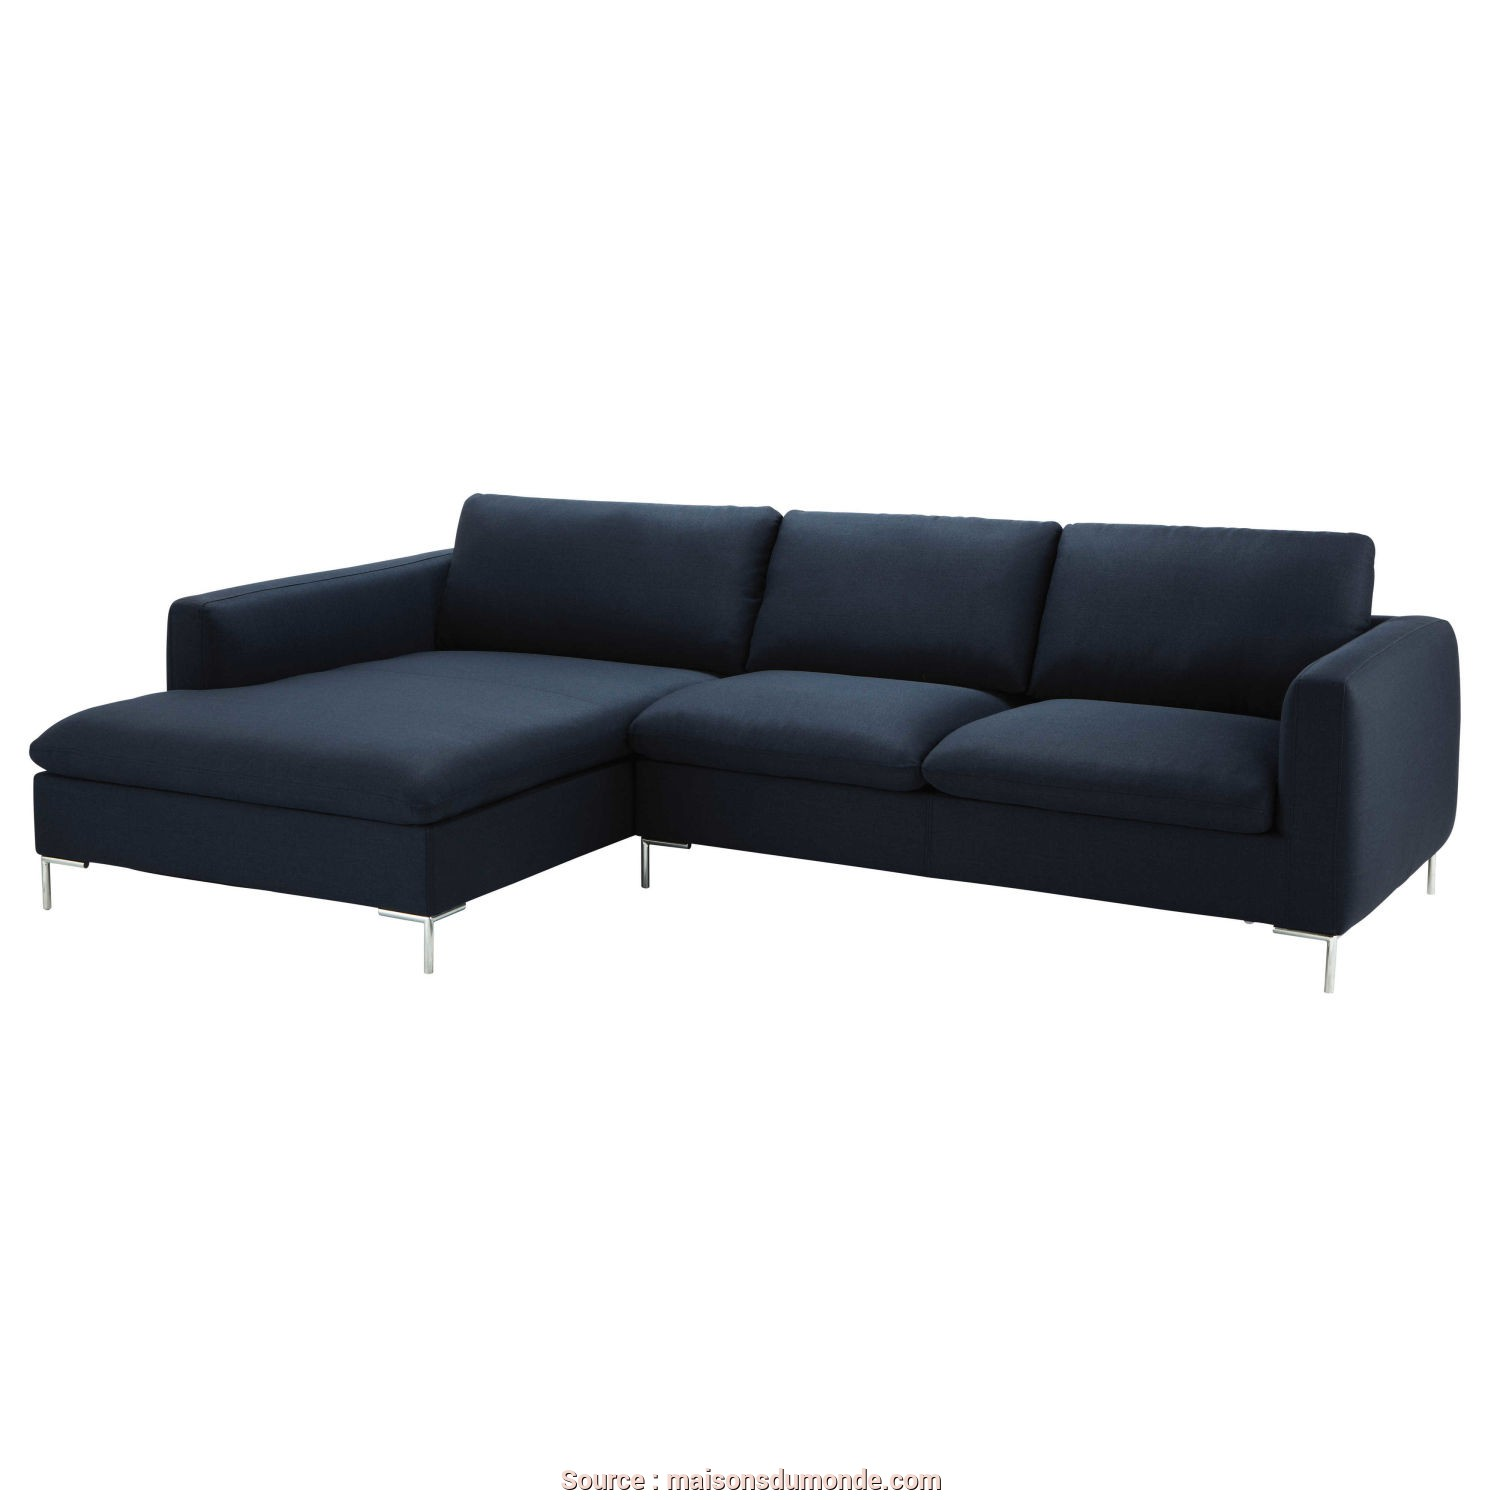 Divani A Maison Du Monde, Costoso 5 Seater Fabric Left Corner Sofa In Midnight Blue City, Maisons Du Monde